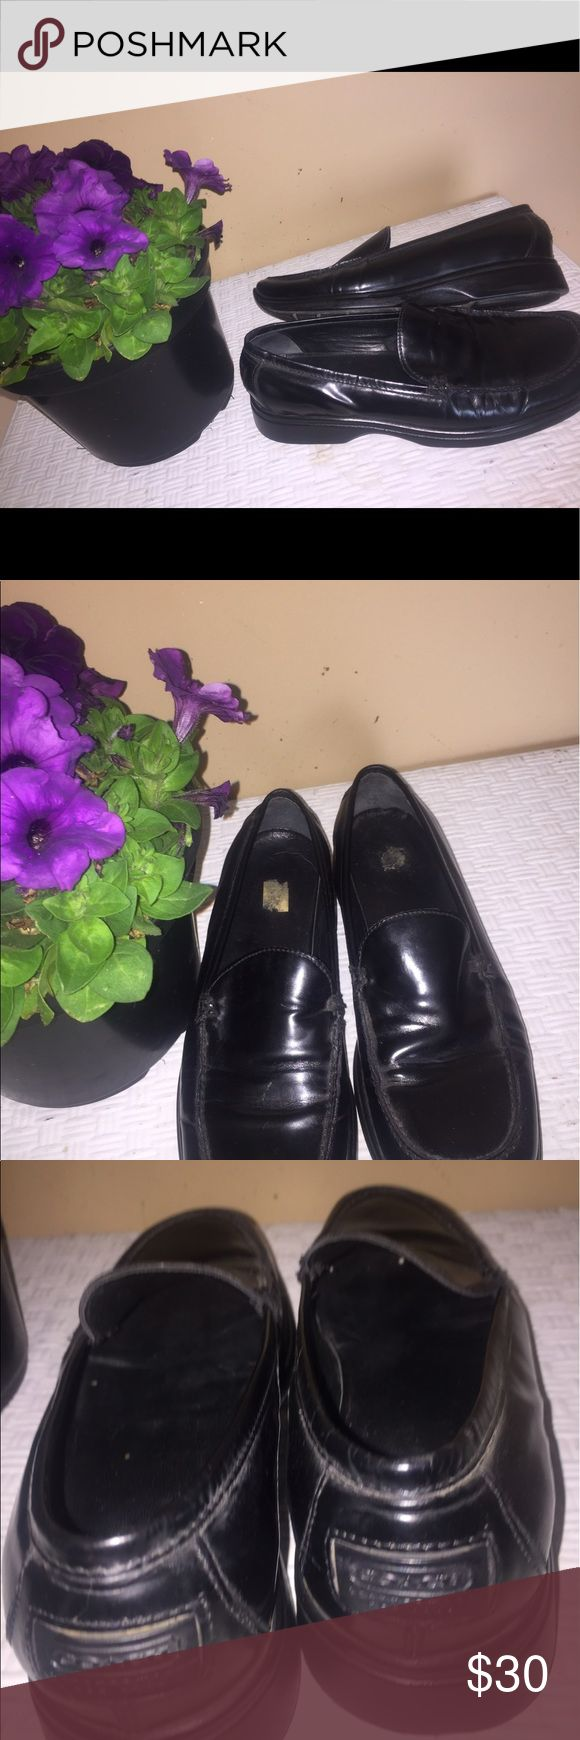 Vintage Coach Black Leather Loafers Size 7B Classic black leather Loafers by, Coach.   Size 7.  Slip on with Coach emblem on heel.  Style name,  Rita.   Nice pre-owned condition. Coach Shoes Flats & Loafers